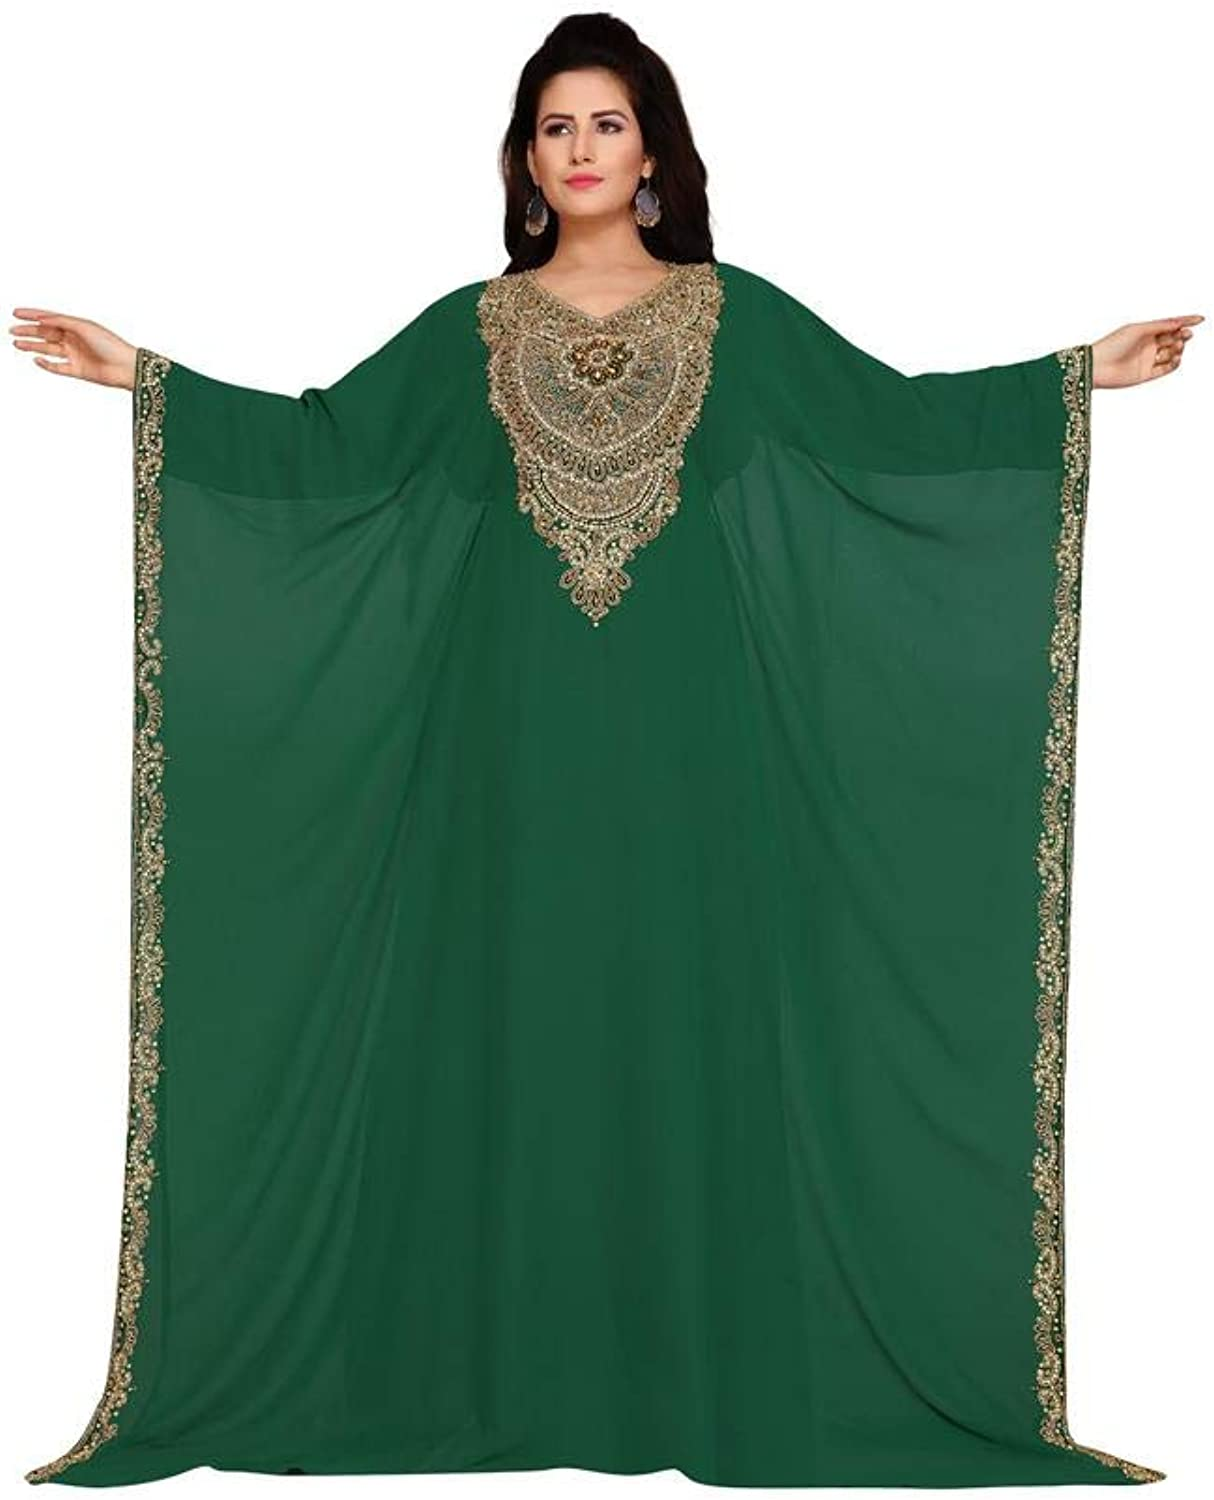 Arabic attire Women's Two Side Open Farasha Neck Embroidered